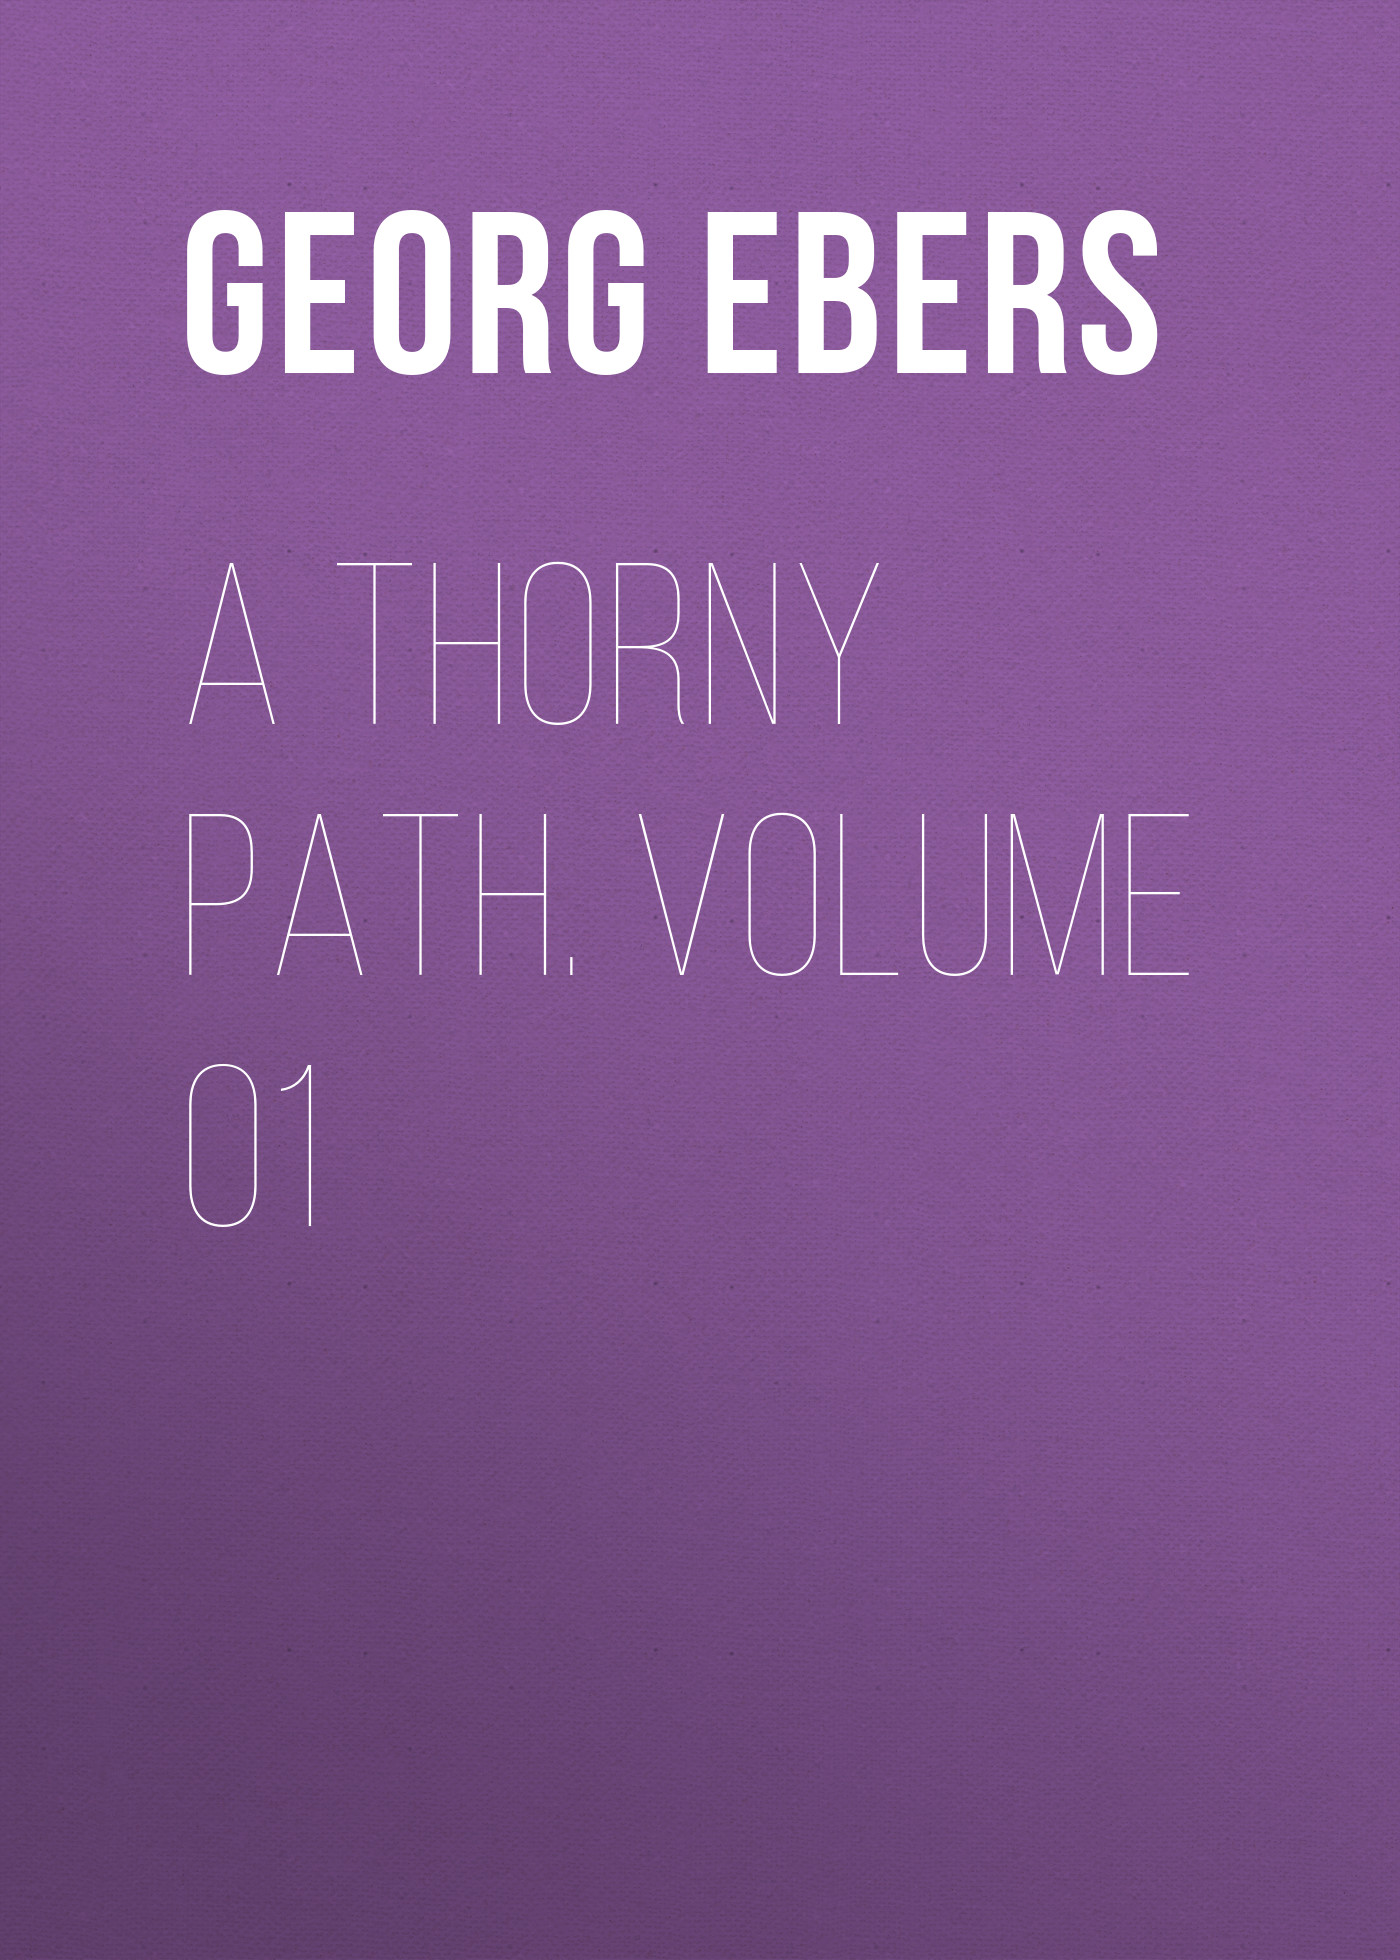 Georg Ebers A Thorny Path. Volume 01